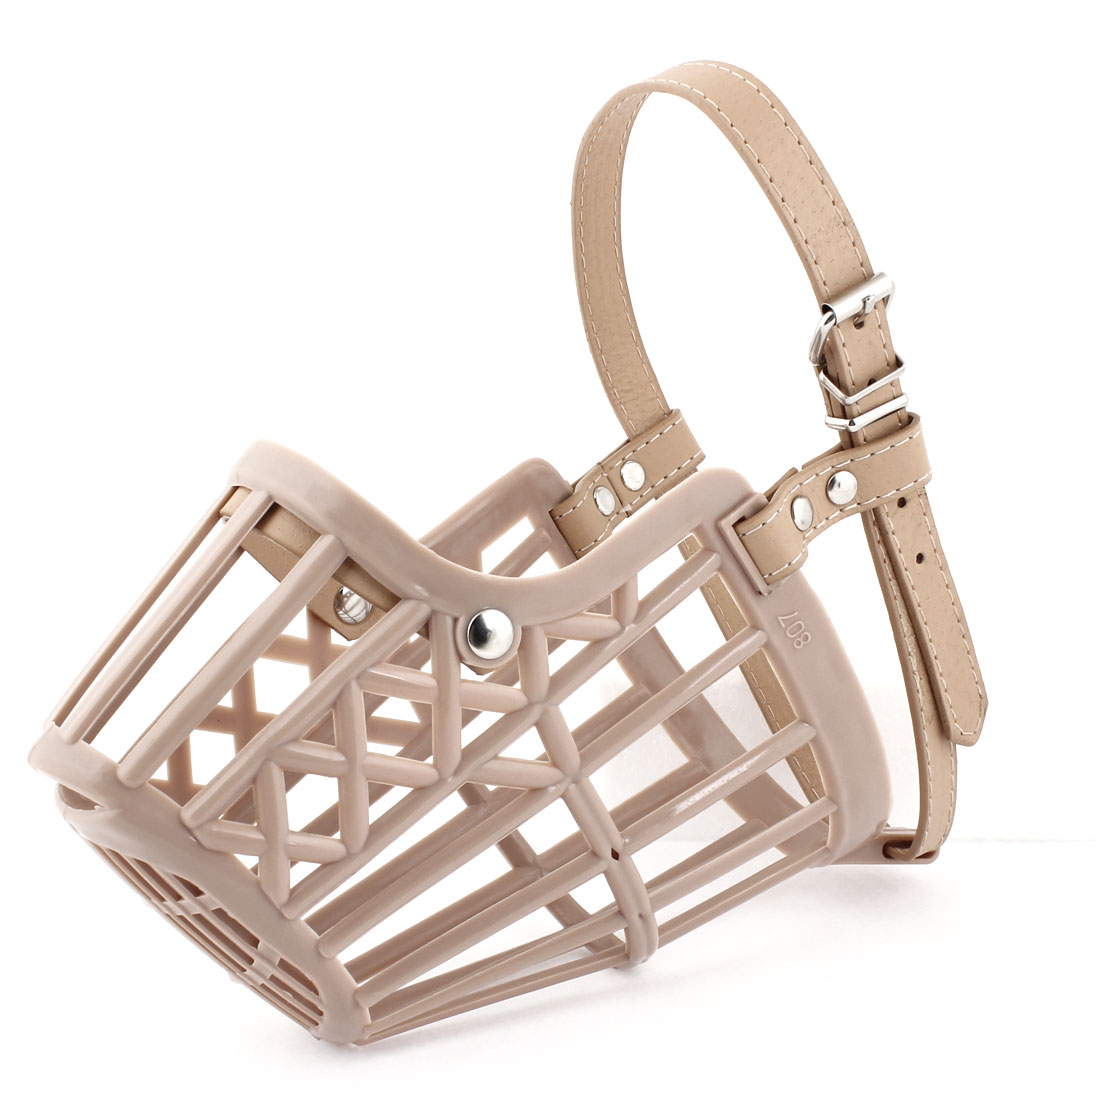 Adjustable Single Pin Buckle Strap Beige Plastic Mesh Muzzle for Dog